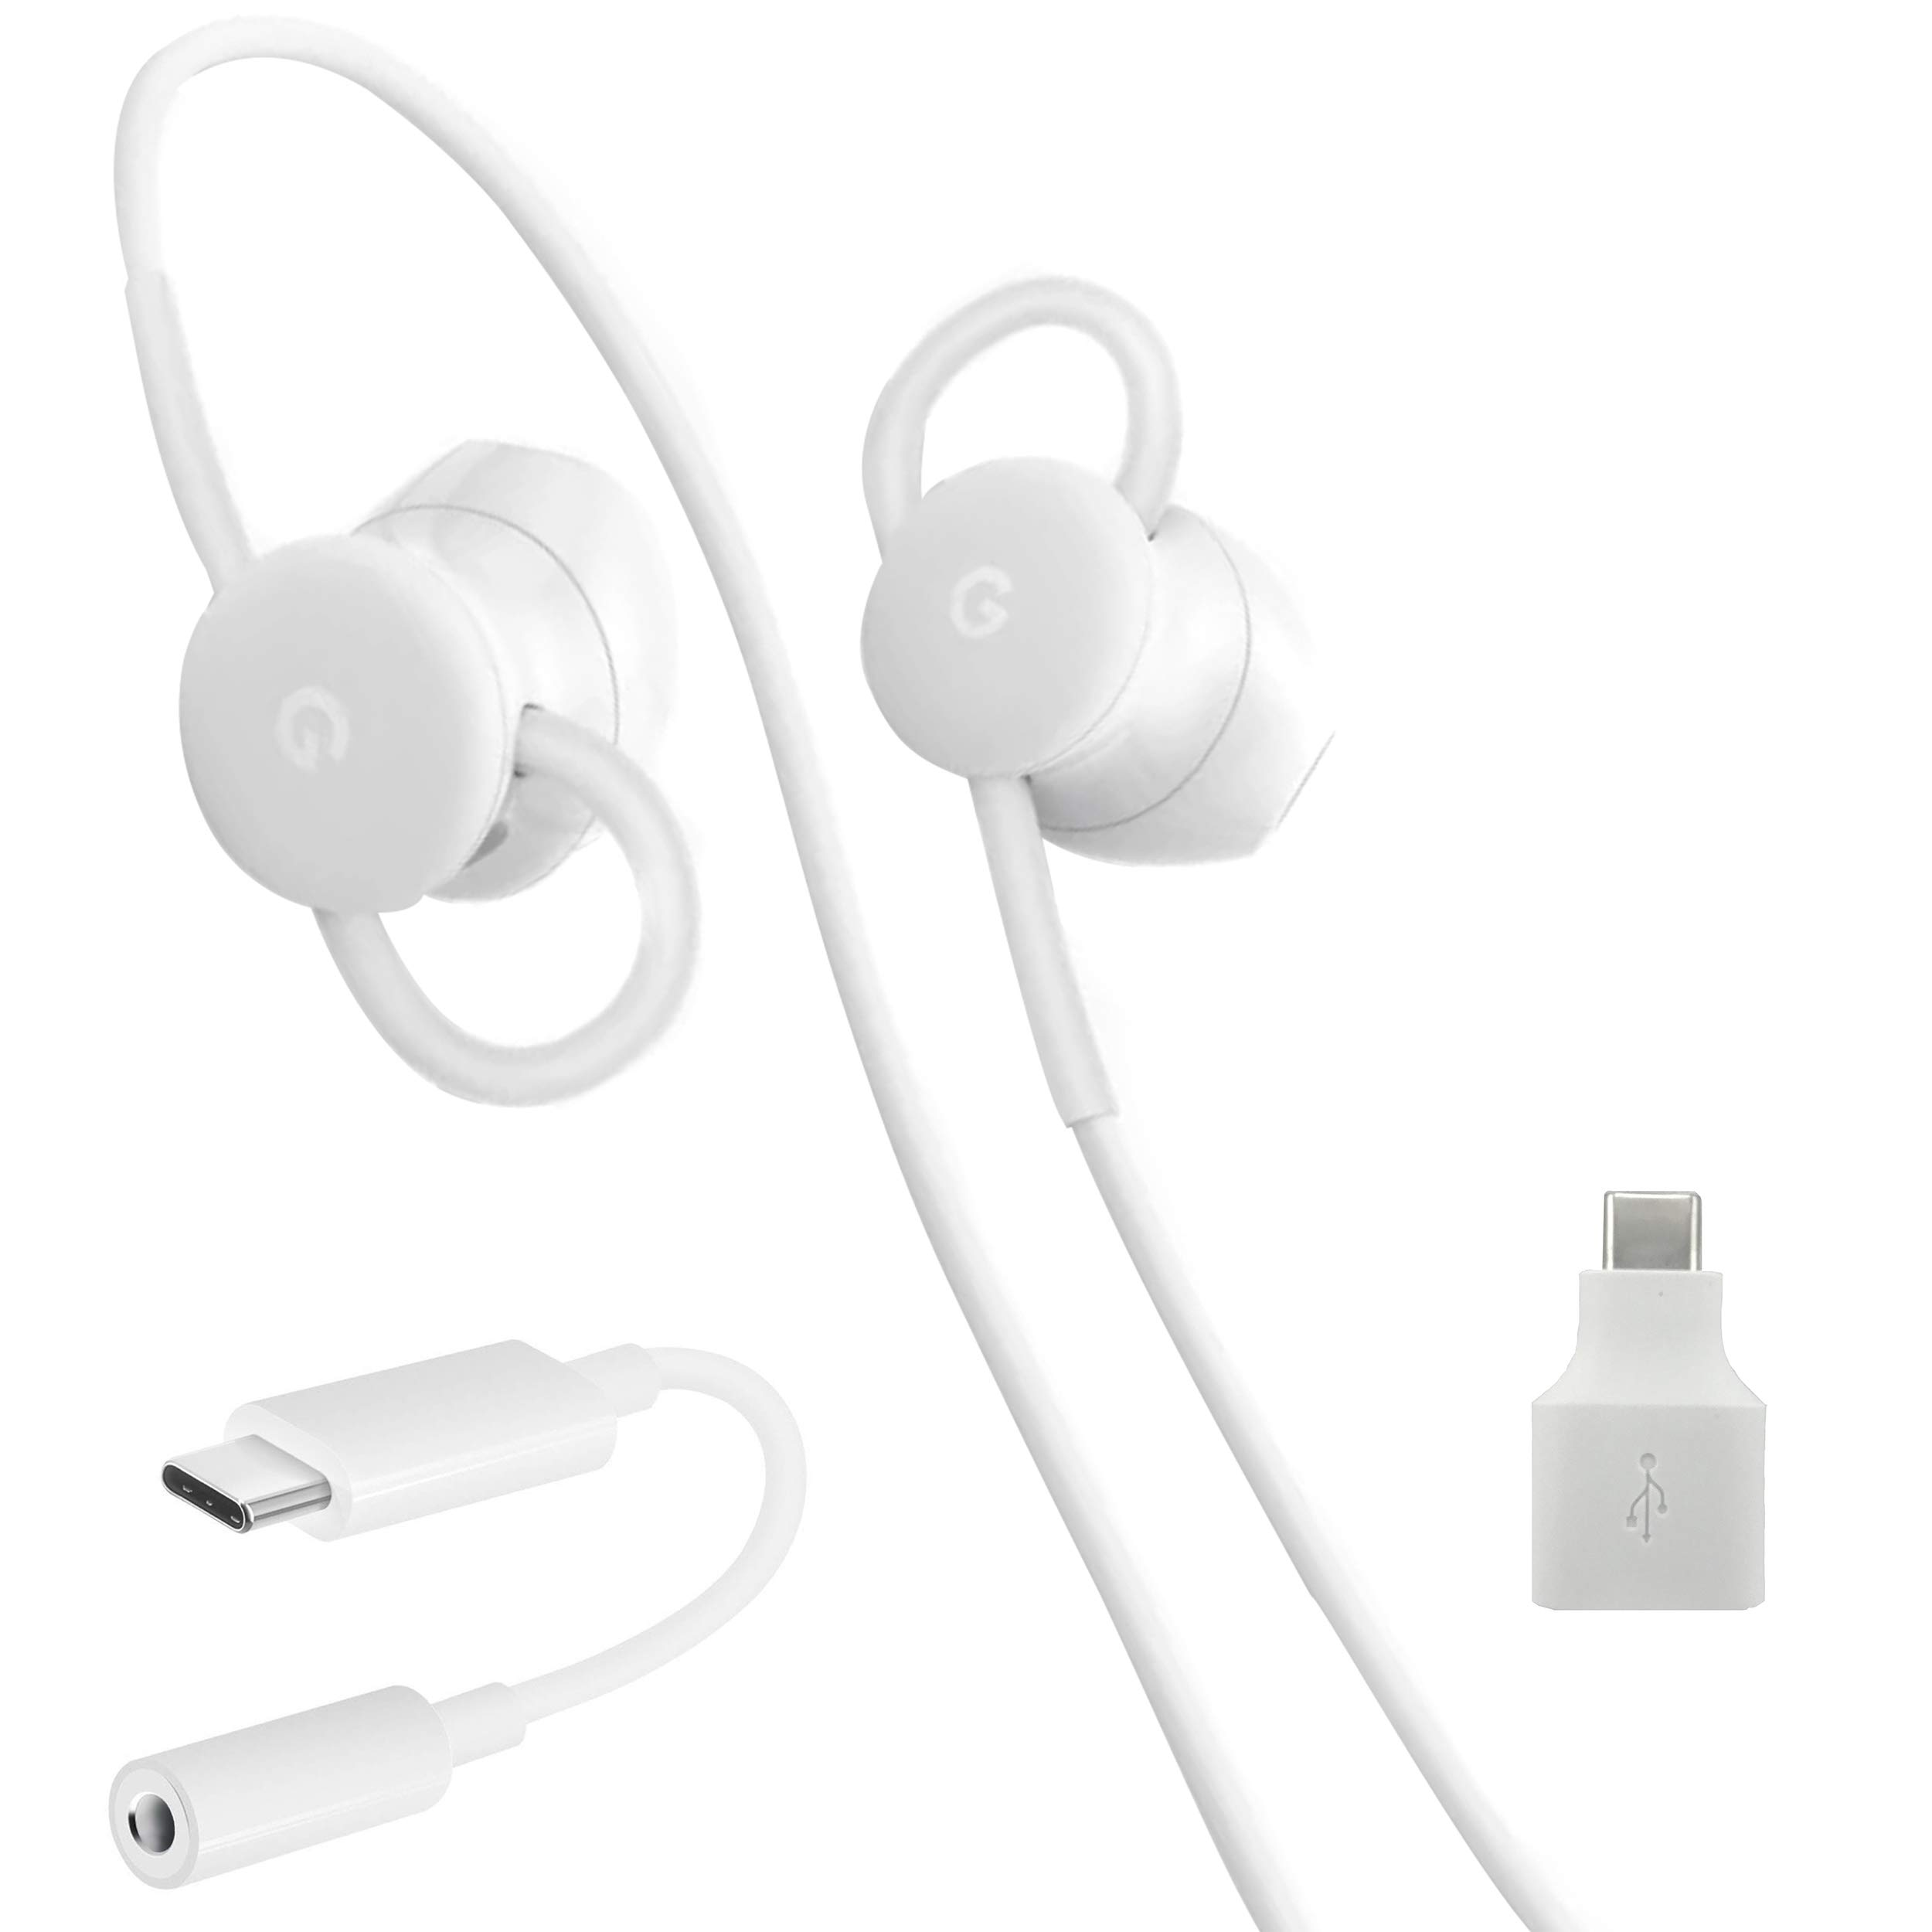 USB-C Earbuds, USB-C to 3.5mm Adapter, USB-C to USB 3.0 Adapter, for Google Pixel Devices - Accessory Combo Kit by Phihong Technology co. (Image #6)